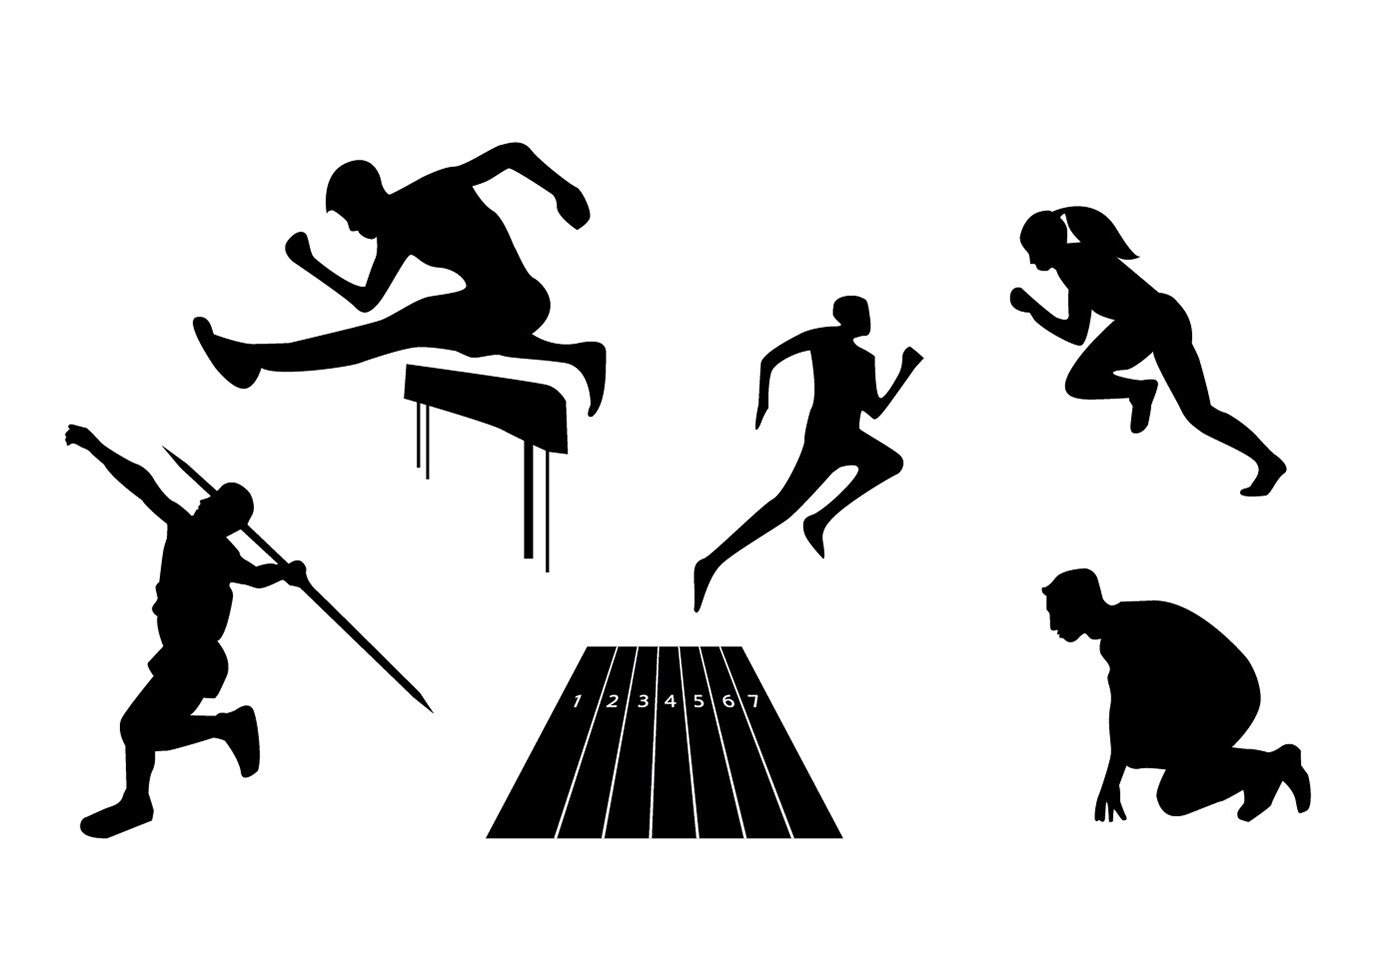 Dynamic Sports Figures Silhouette: Download Free Vector Art, Stock Graphics